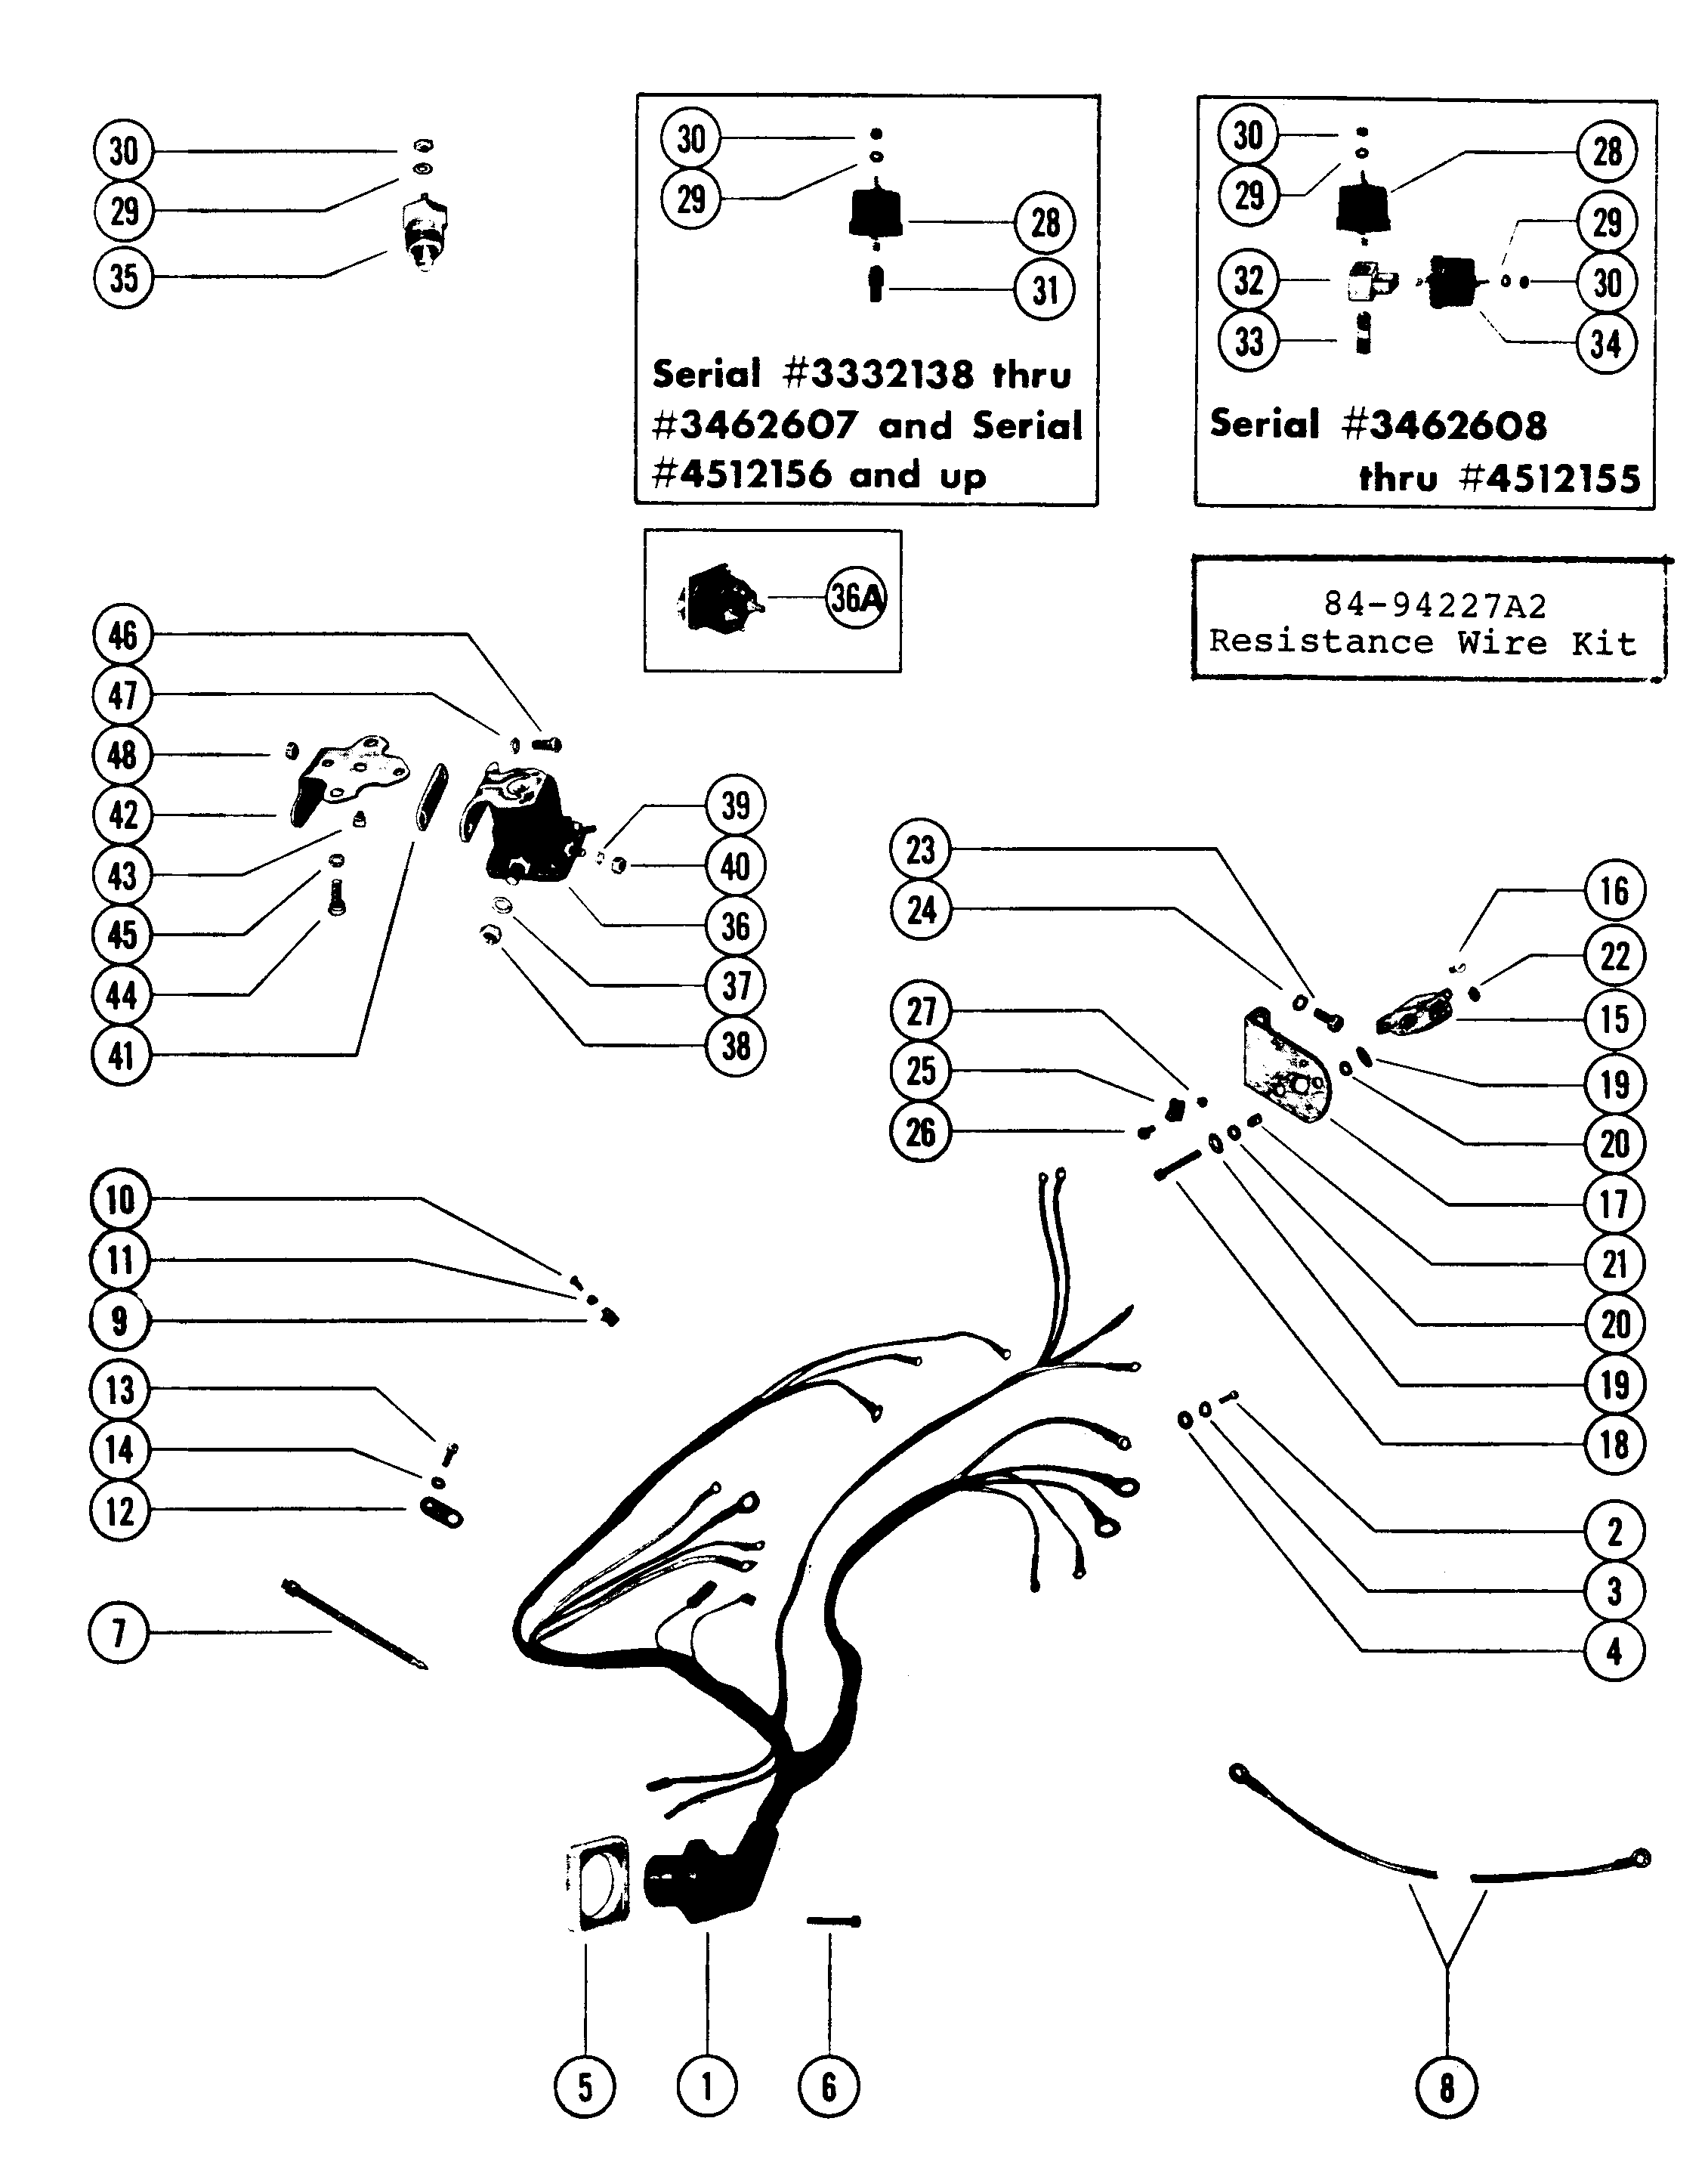 140 mercruiser wiring diagram mercury mercruiser 140 gm 181 i l4 1972 1978 3332138 thru  mercury mercruiser 140 gm 181 i l4